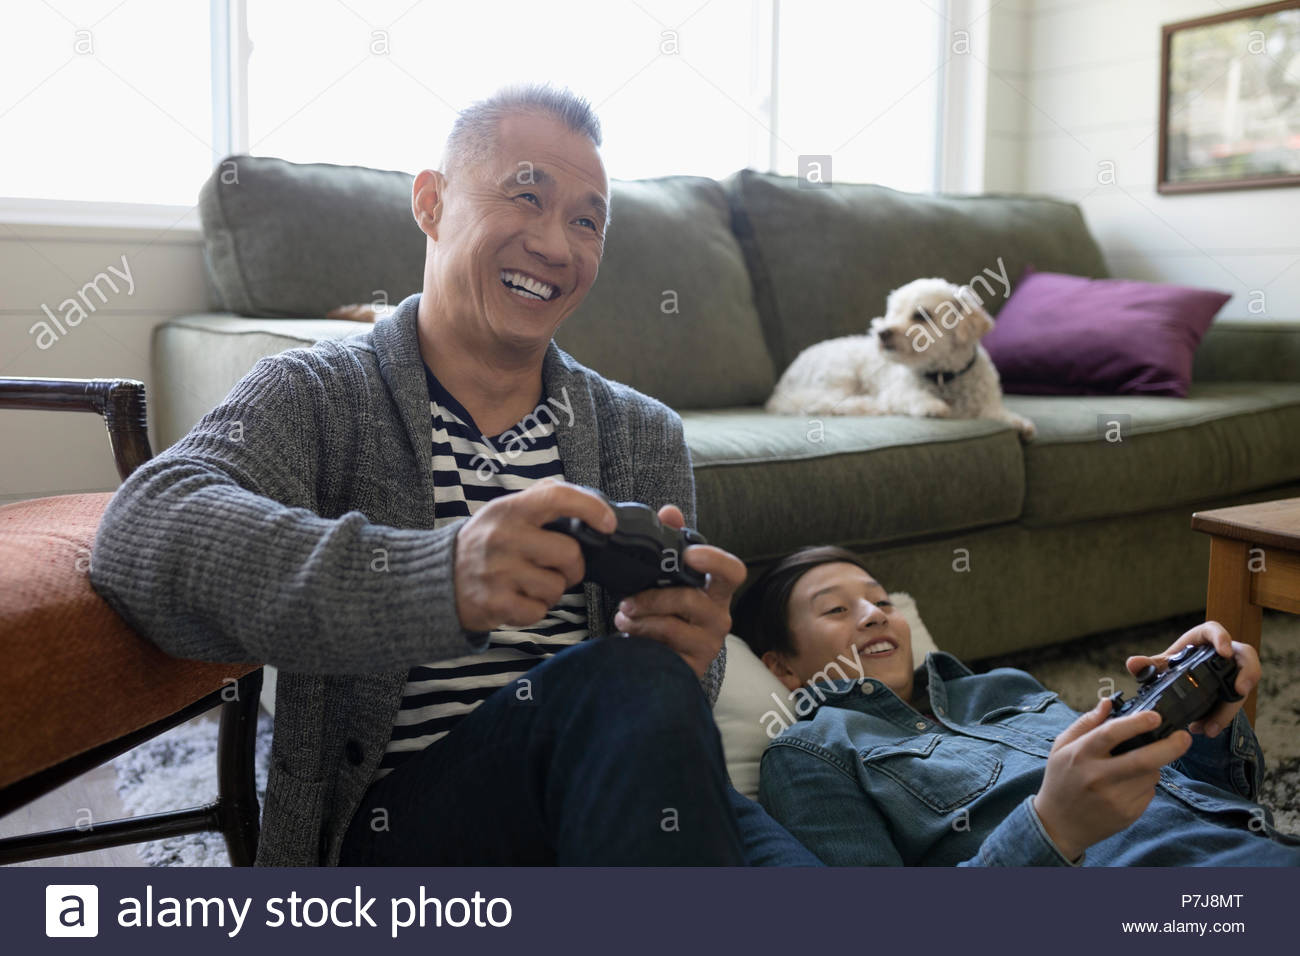 Chien regardant happy father and son playing video game in living room Banque D'Images